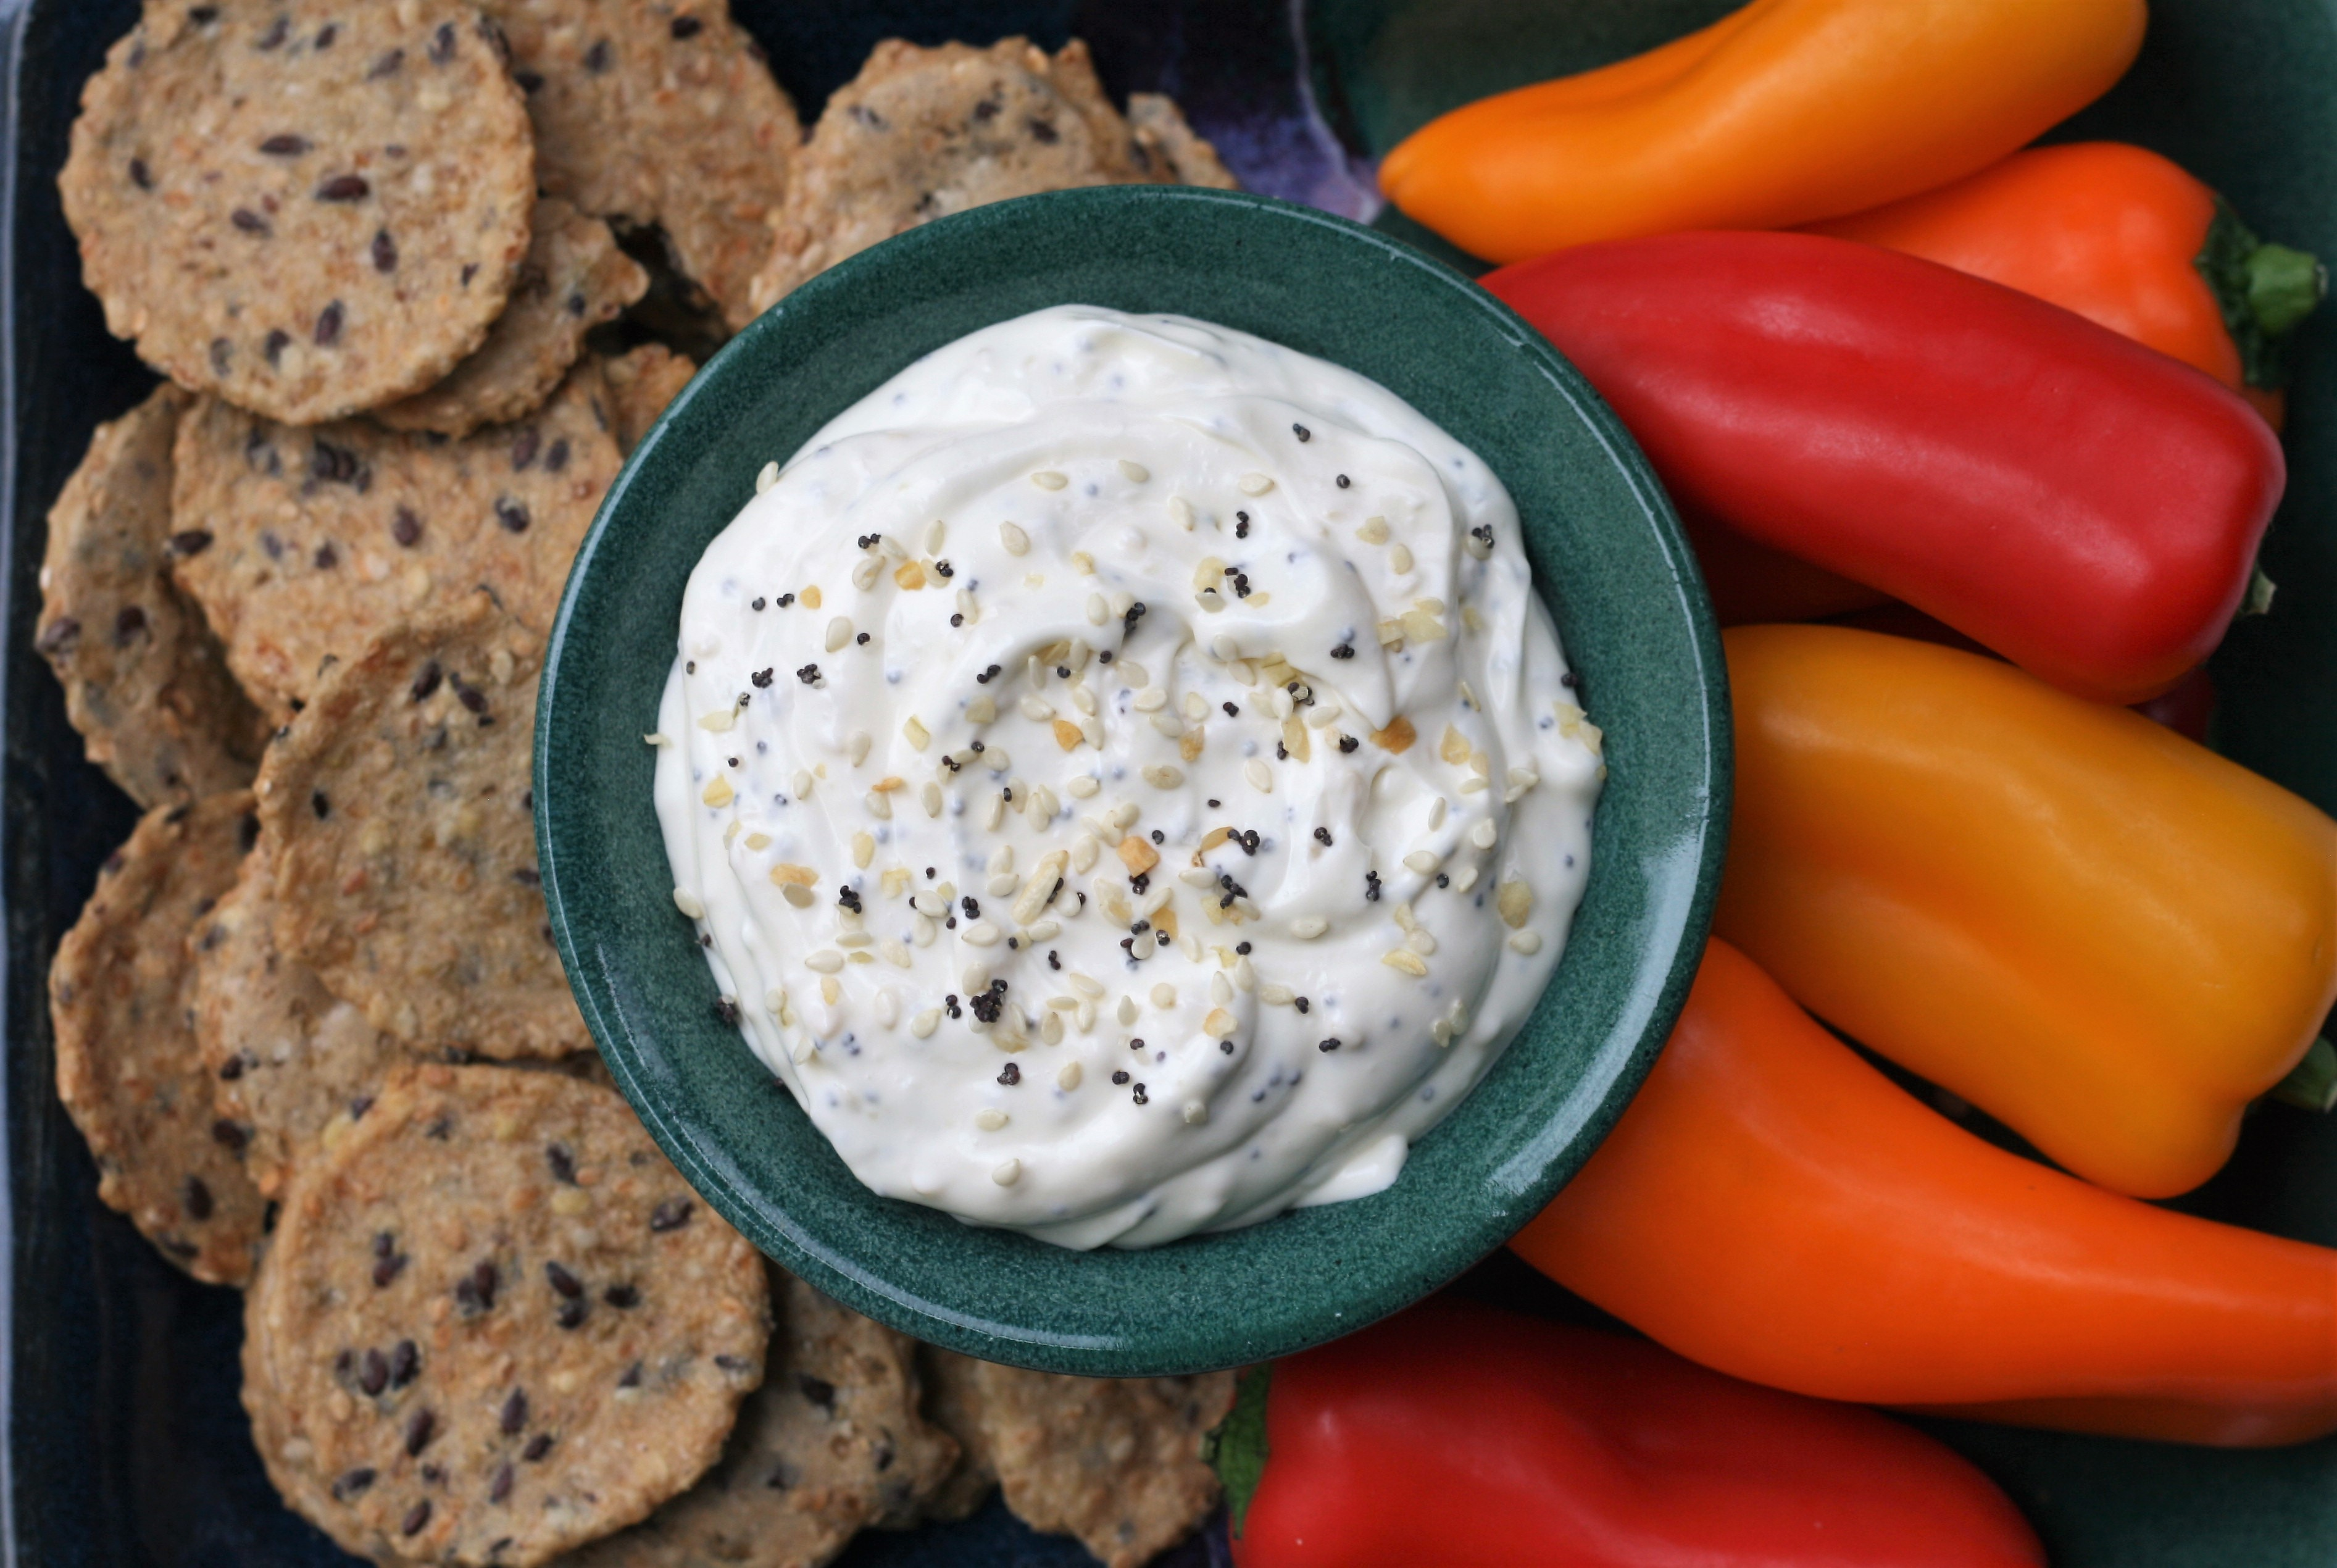 """""""If you're a fan of 'everything but the bagel' seasoning, you'll love this low-carb dip made with only 4 ingredients,"""" says France C. """"Bagel seasoning can be found at most major retailers or you can easily make your own using one of the many recipes available online. Serve with bagel chips or your favorite crackers."""""""